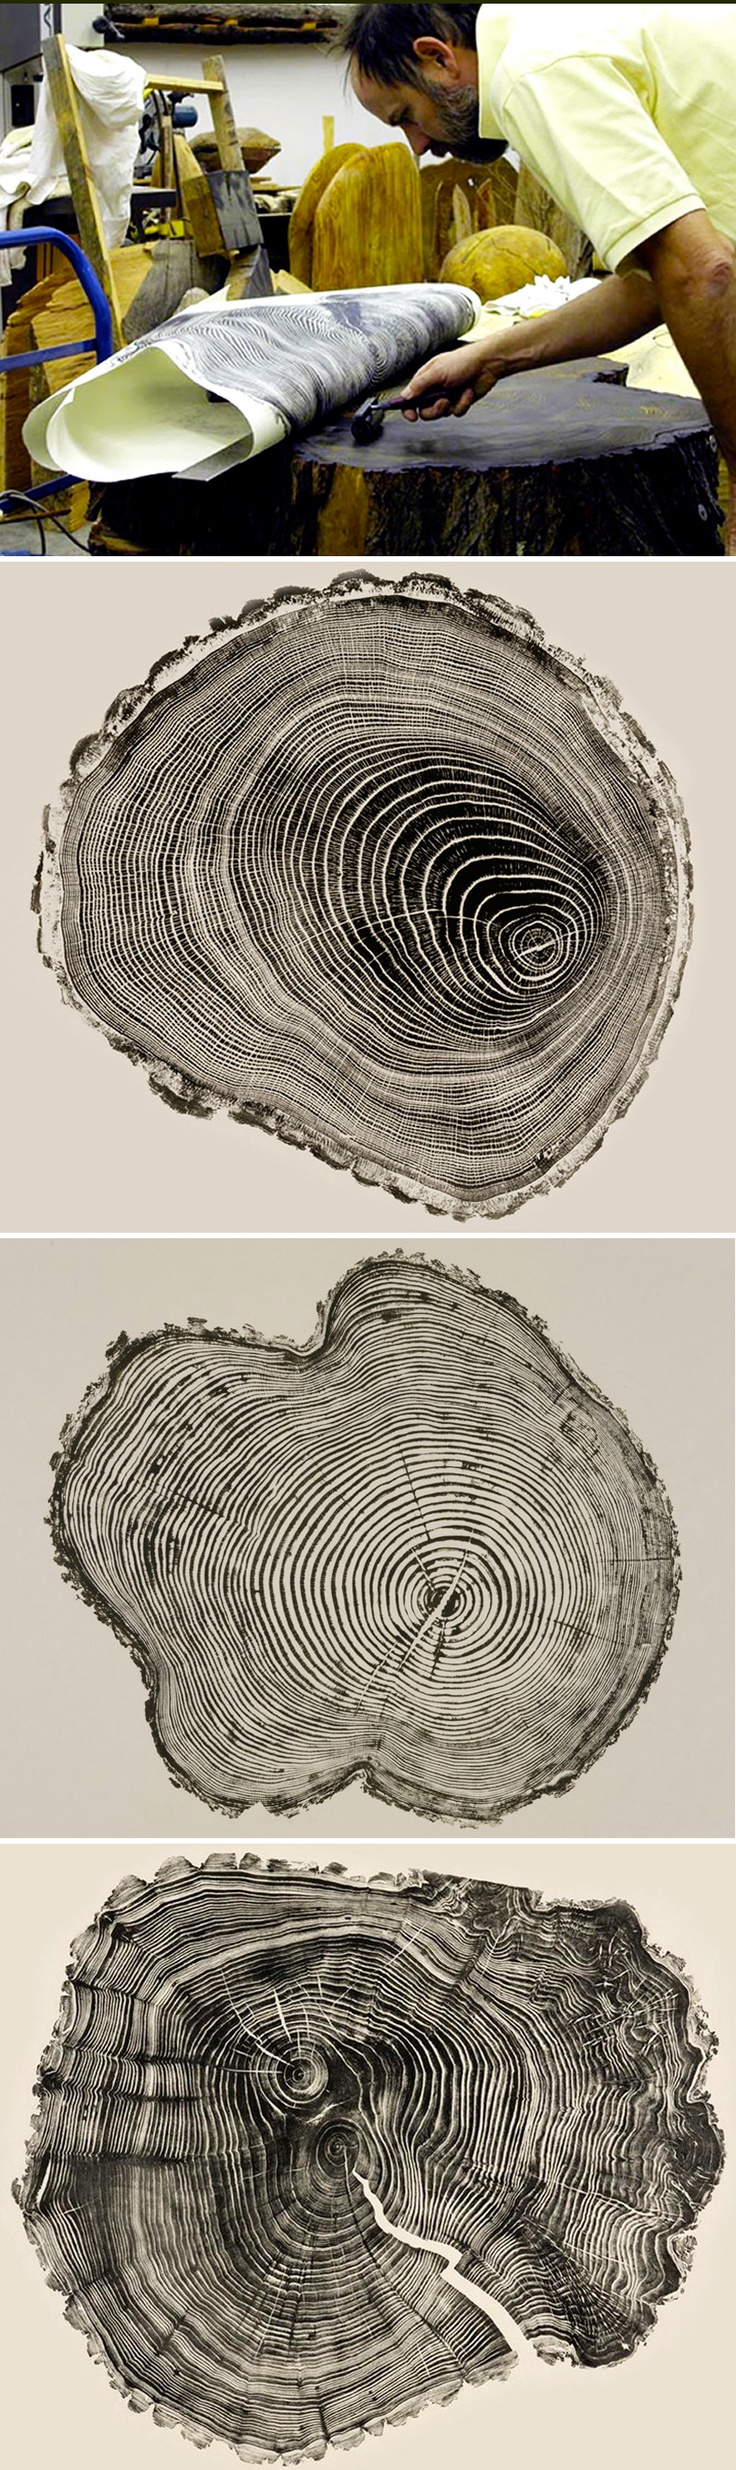 Bryan Nash Gill : brilliant new meaning to woodcuts!